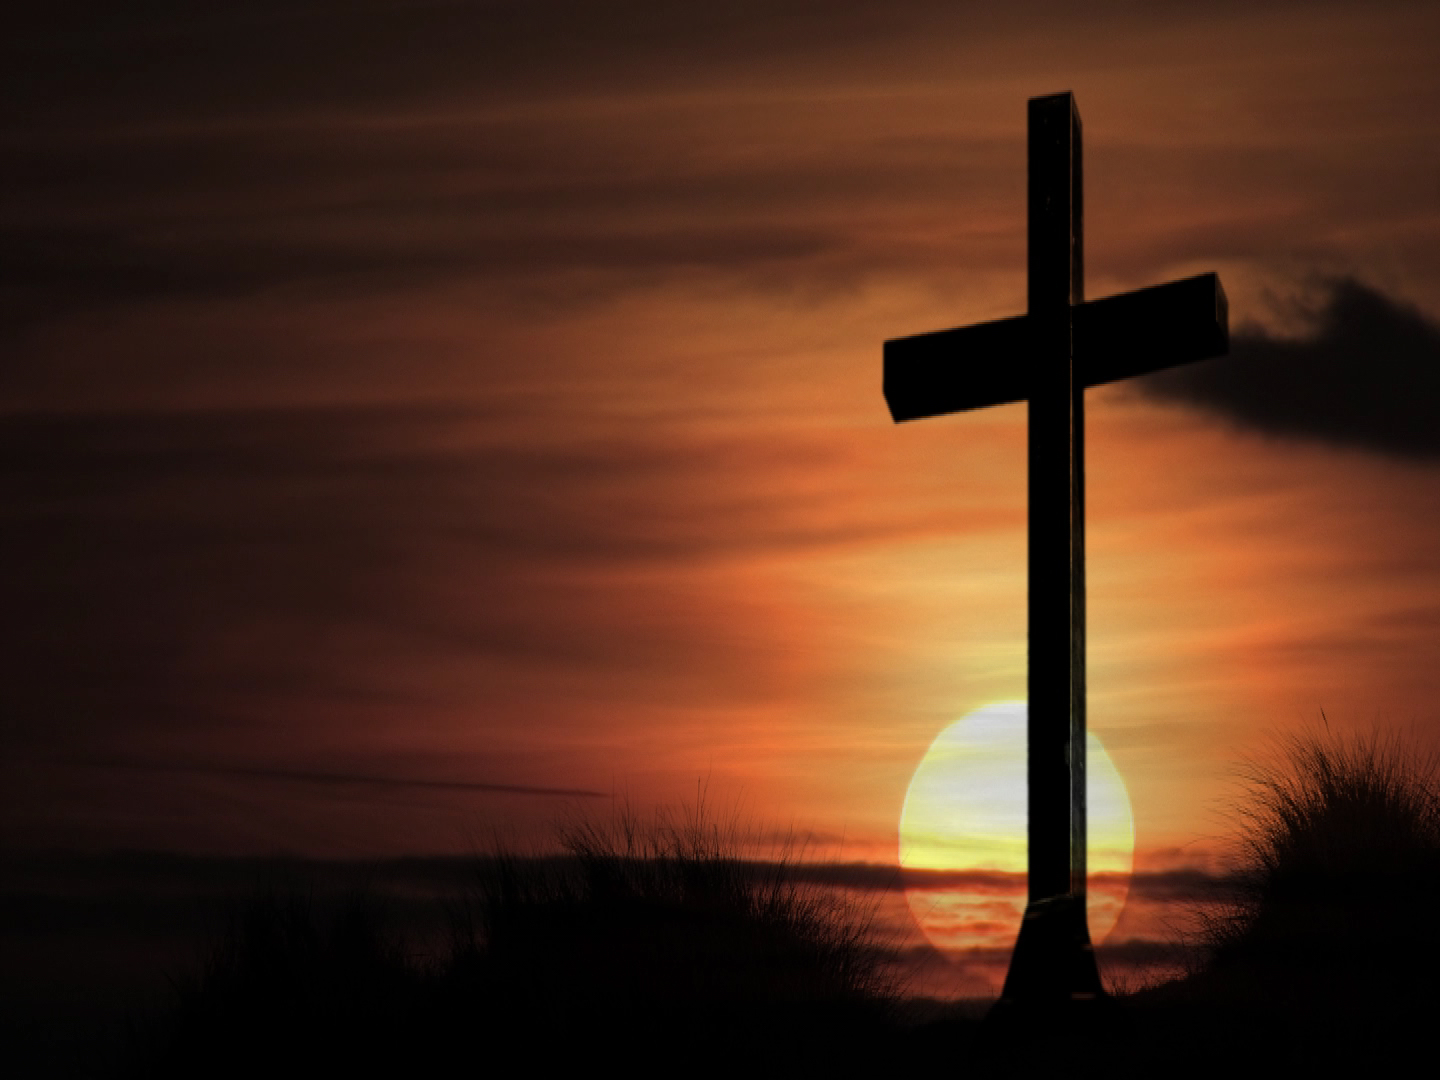 Cross On Sunset Wallpaper   Christian Wallpapers and Backgrounds 1440x1080